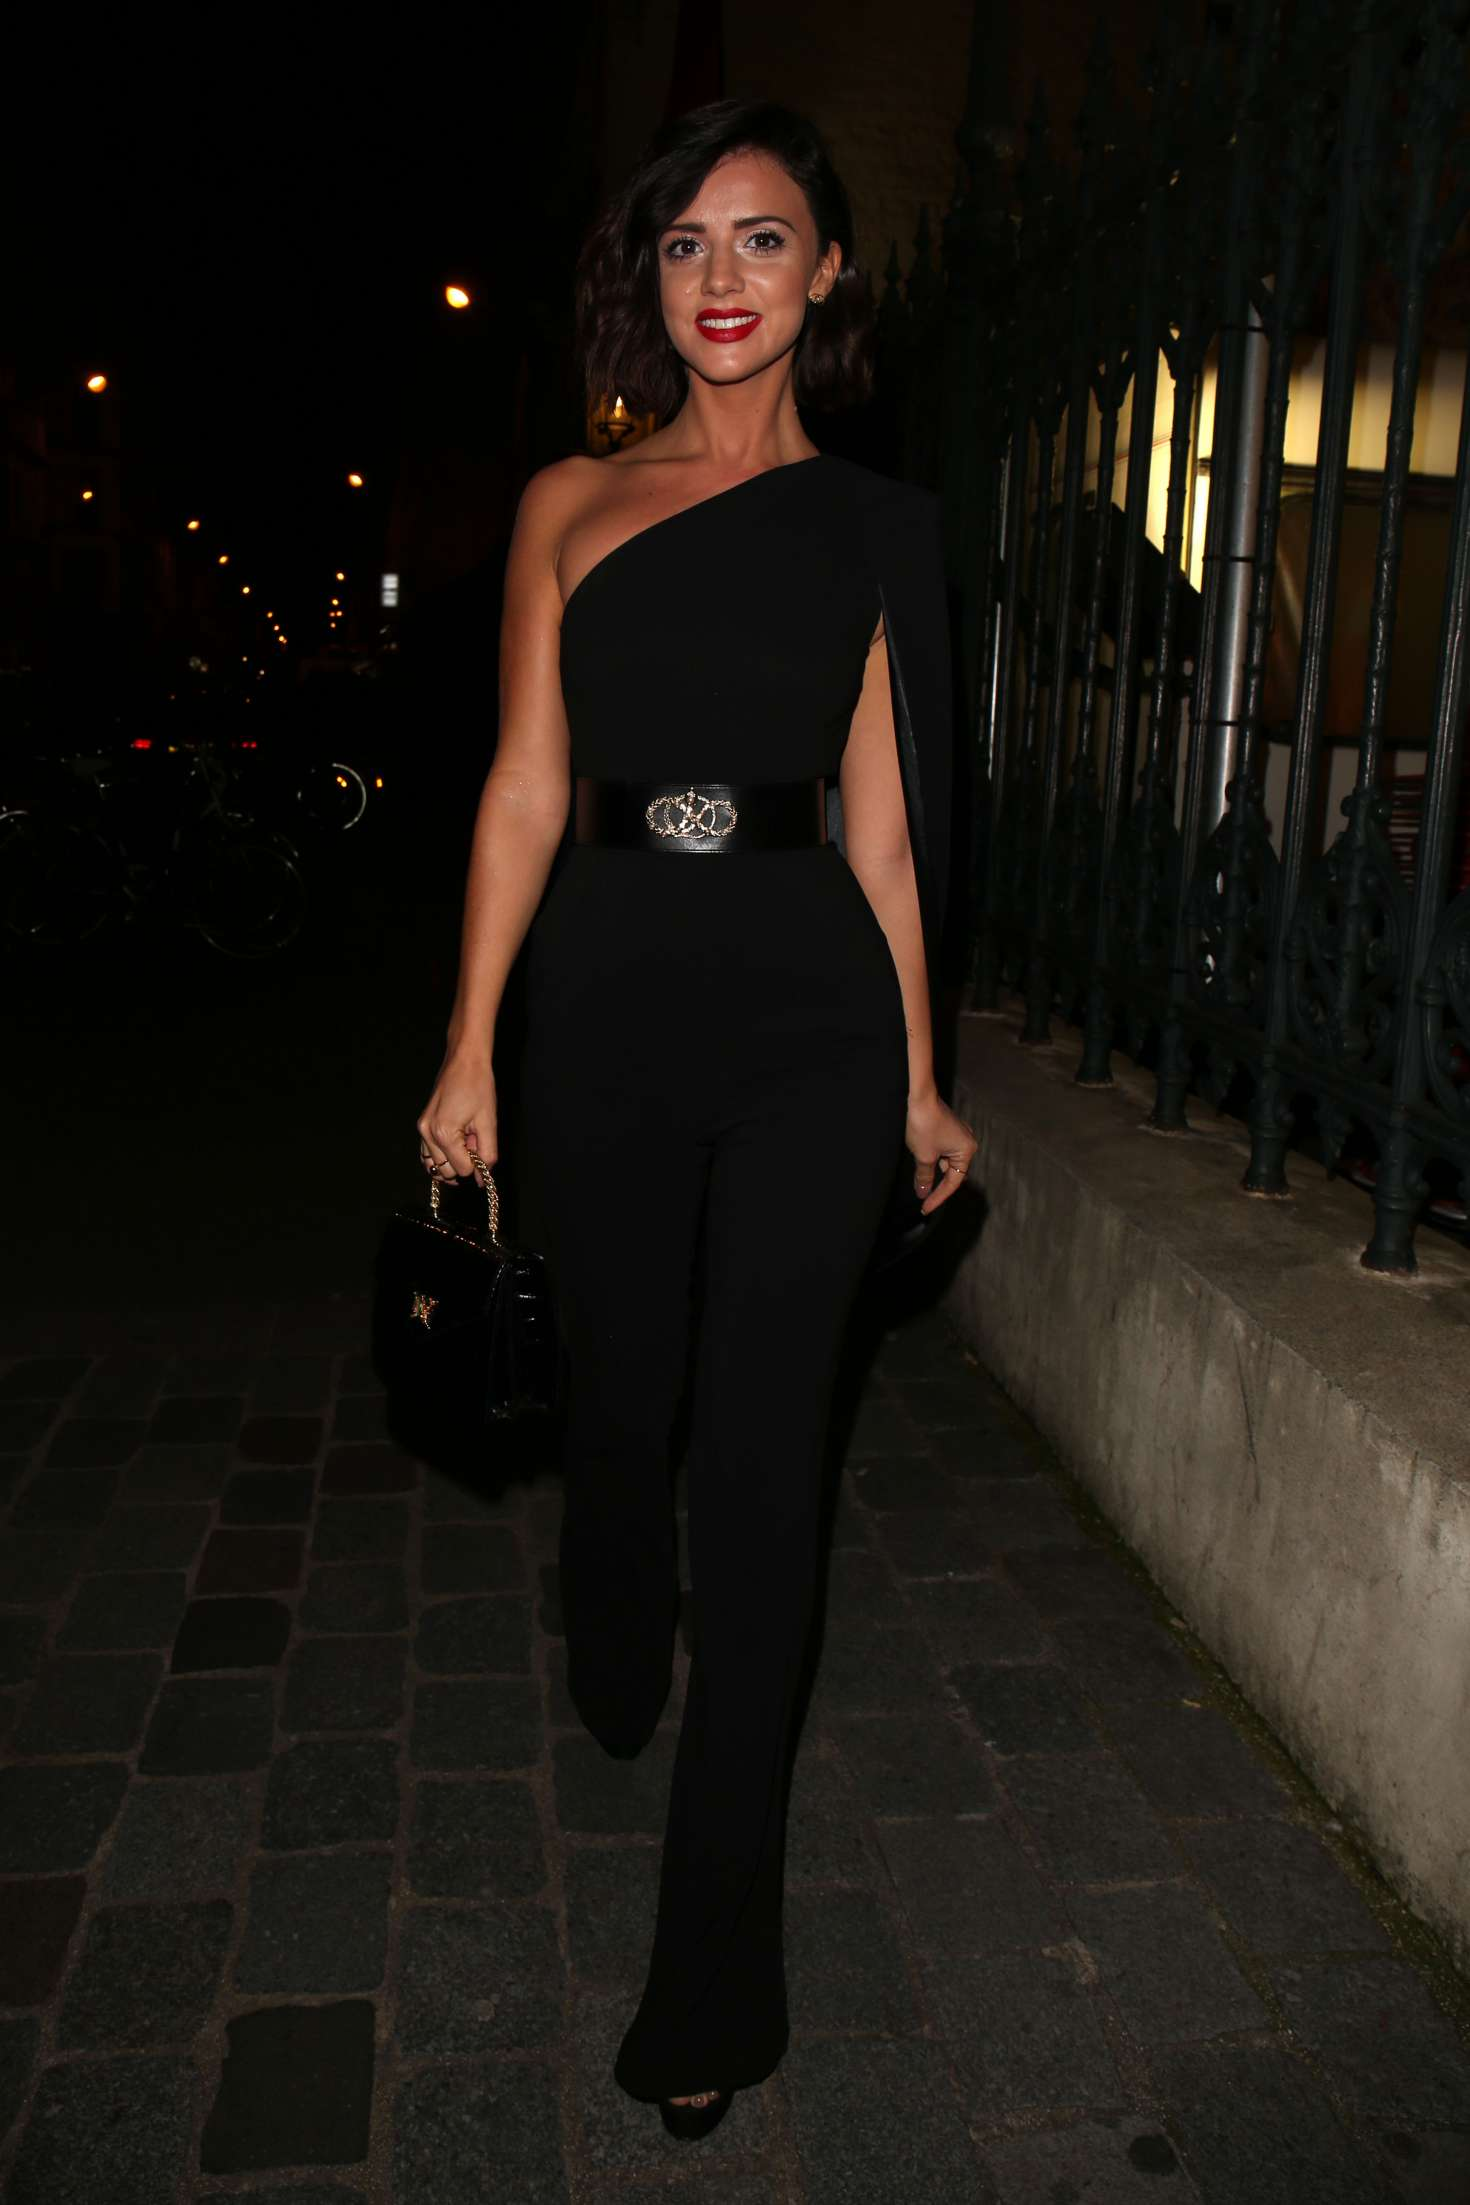 Lucy Mecklenburgh 2018 : Lucy Mecklenburgh: Arriving at Gun Pei Fashion Show 2018 -05